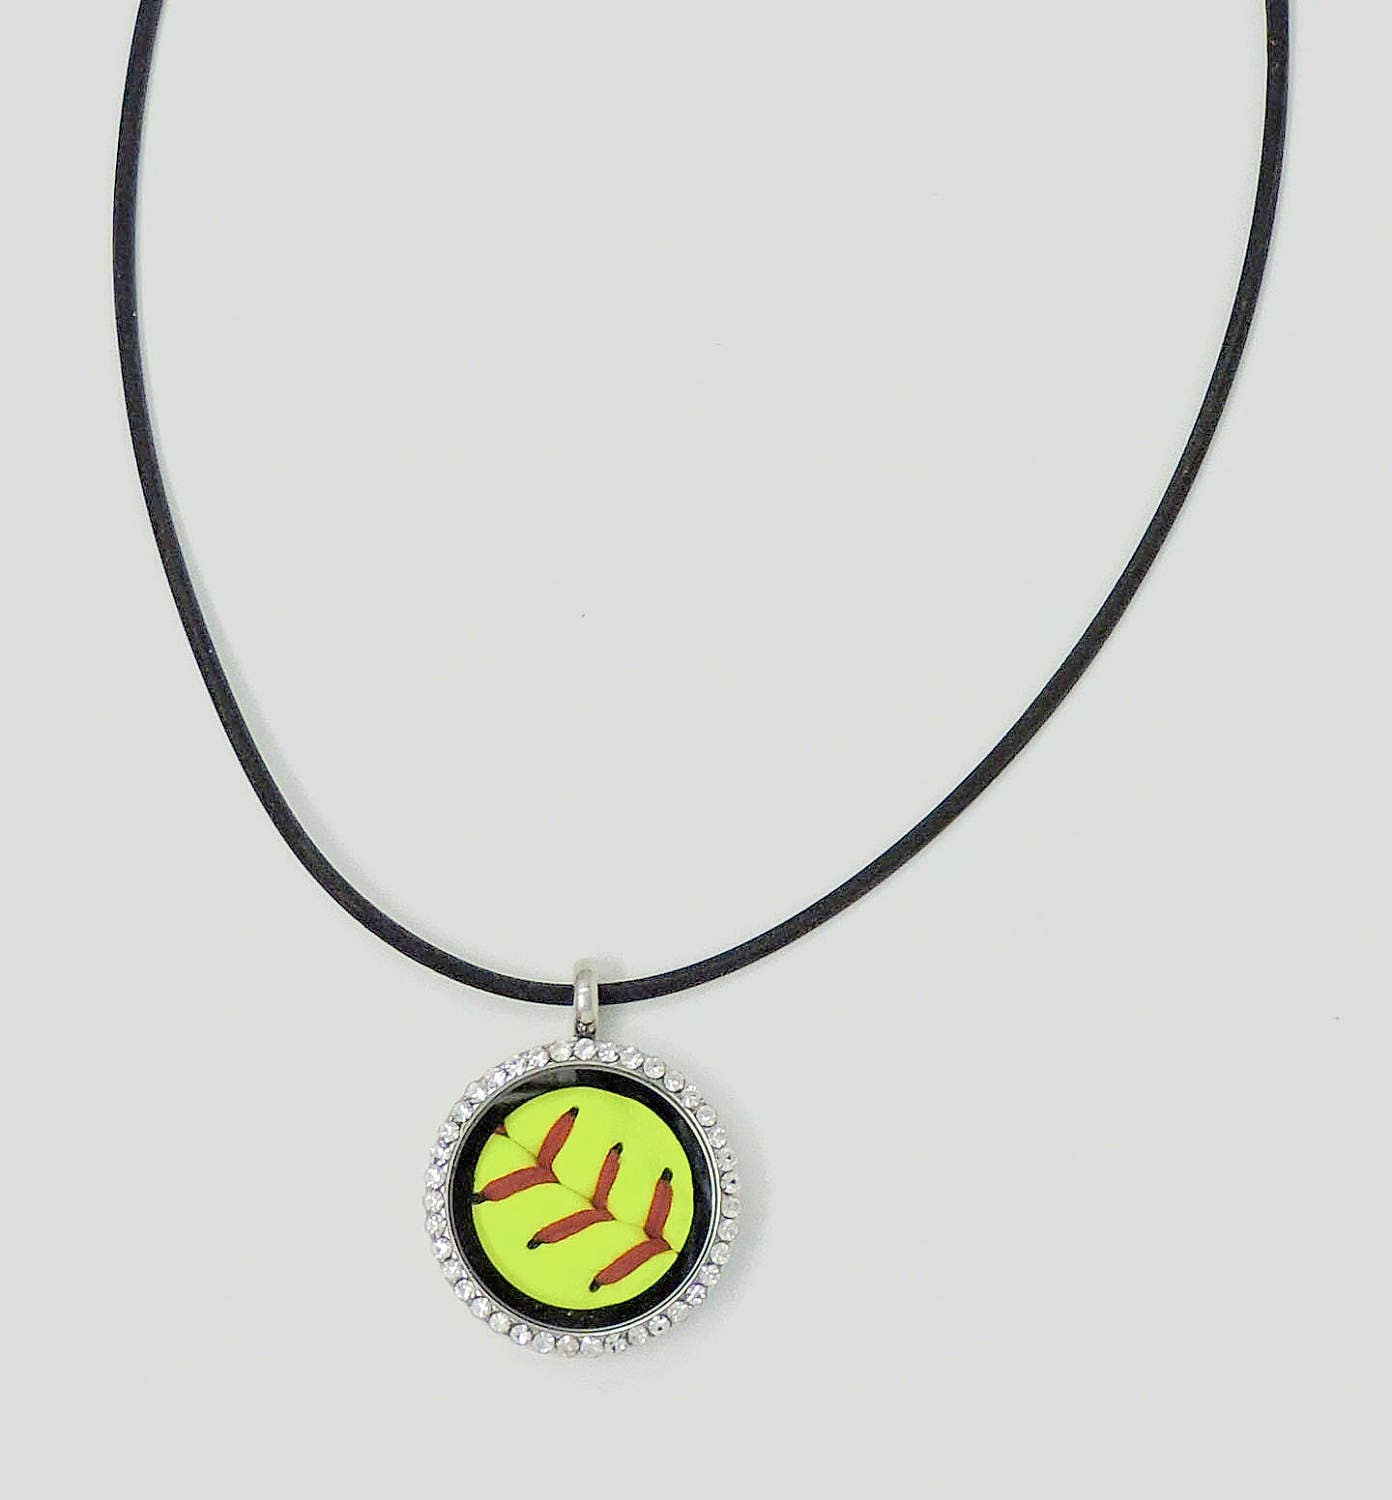 exclusive softball red gifts fastpitch baseball designs category sterling basesoft necklace plated engravable rock bracelet